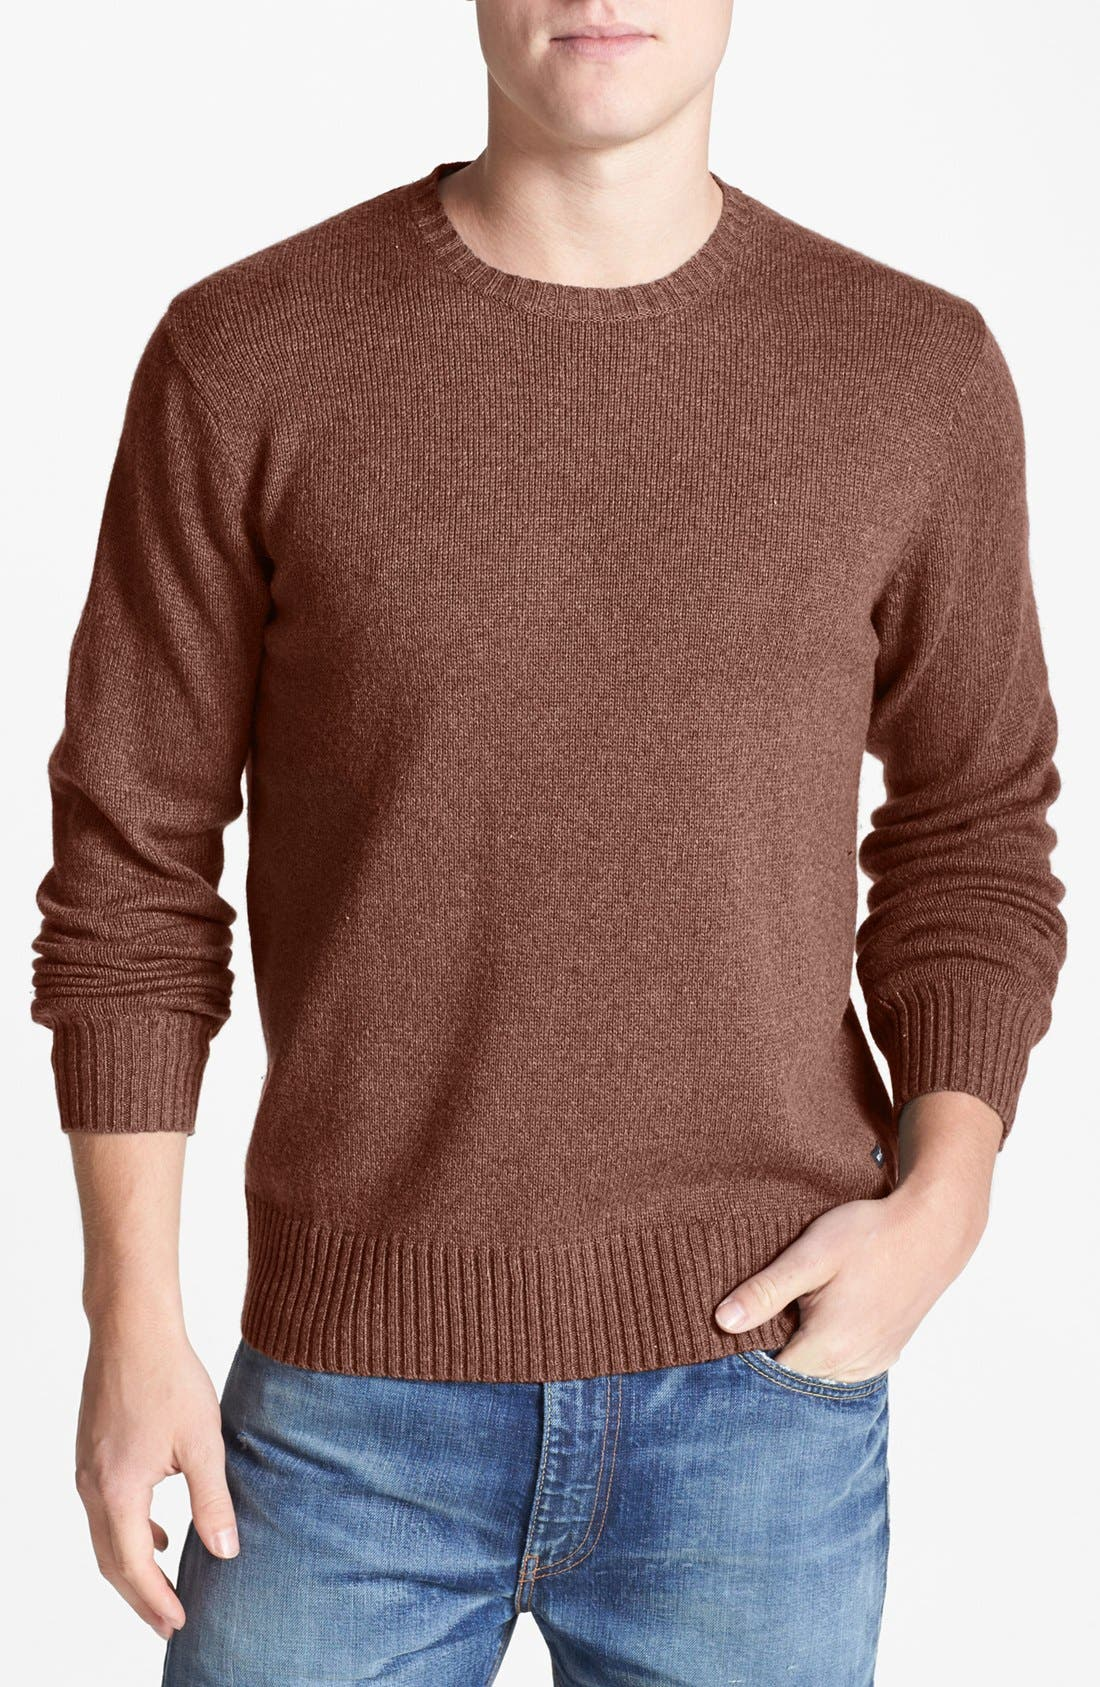 Alternate Image 1 Selected - RVCA 'Briza' Crewneck Sweater